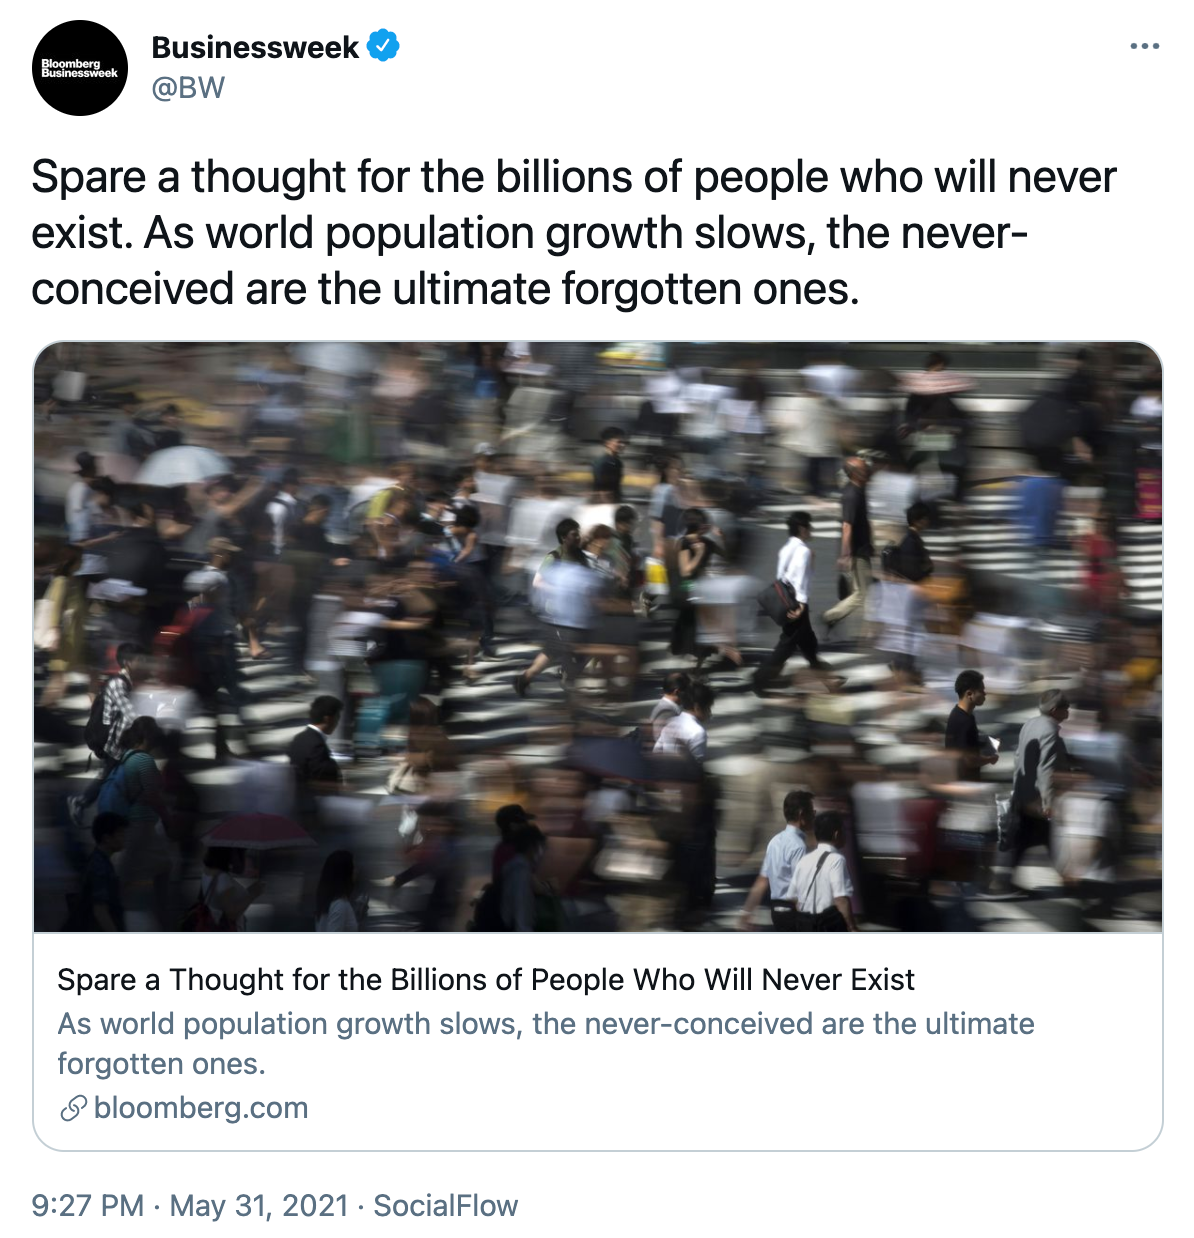 """Tweet from Bloomberg Businessweek reading """"Spare a thought for the billions of people who will never exist. As world population growth slows, the never-conceived are the ultimate forgotten ones."""""""